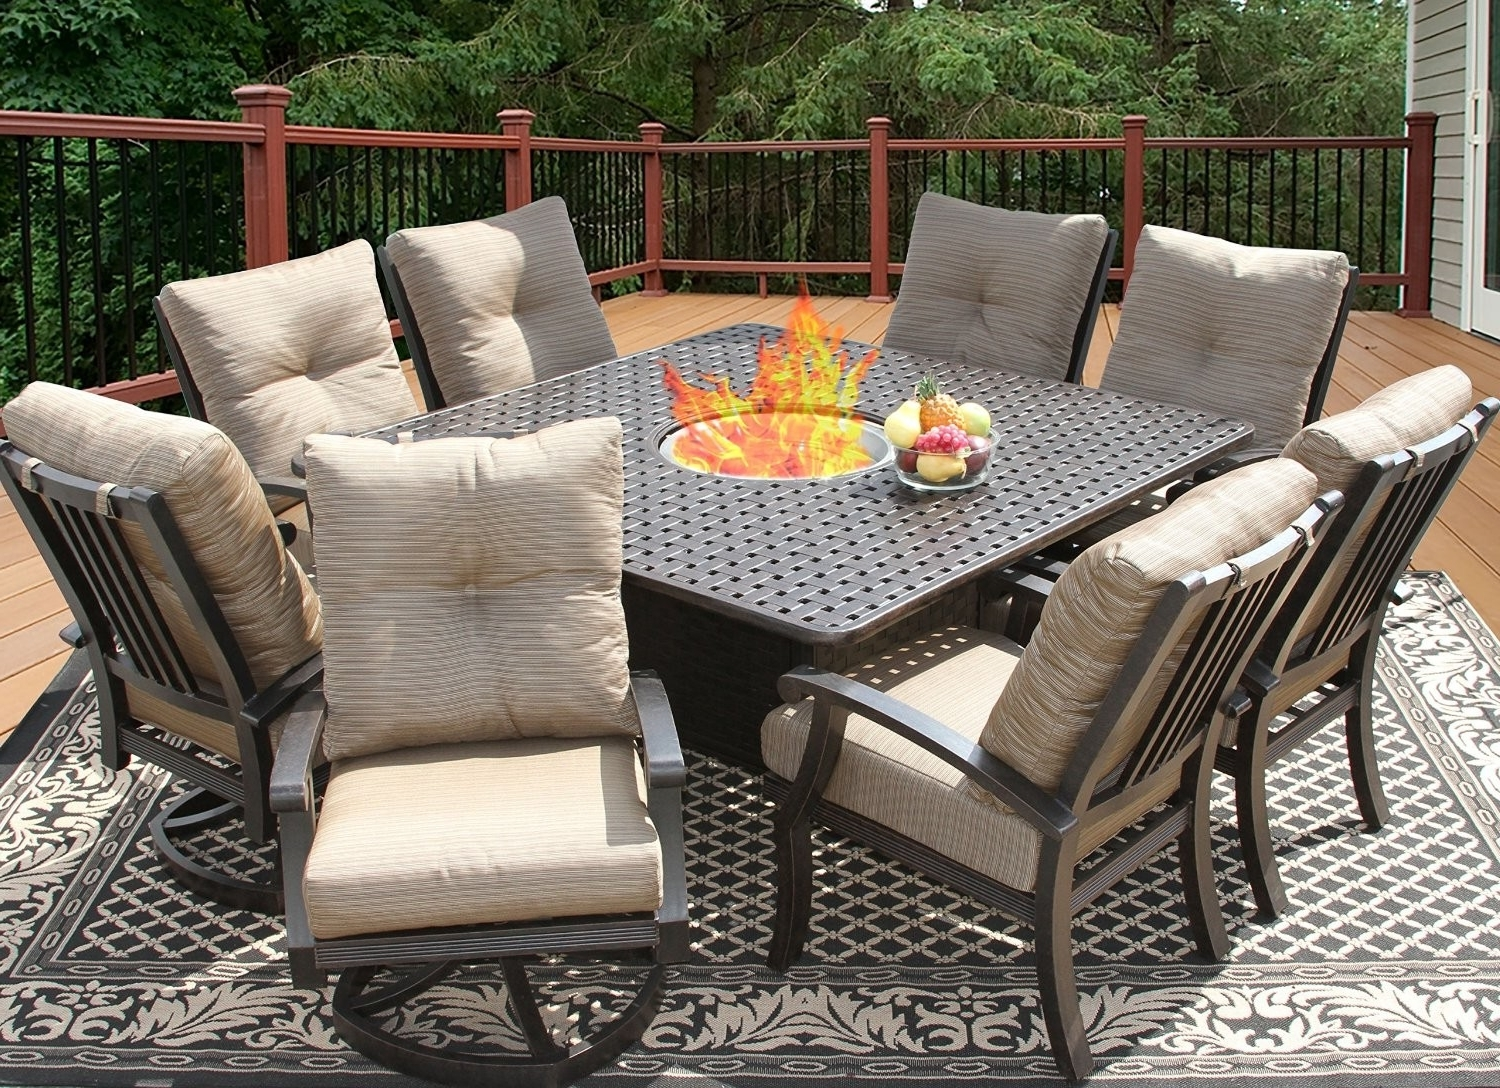 8 Seat Outdoor Dining Tables in Preferred Outdoor Dining Tables For 8 - Lisaasmith